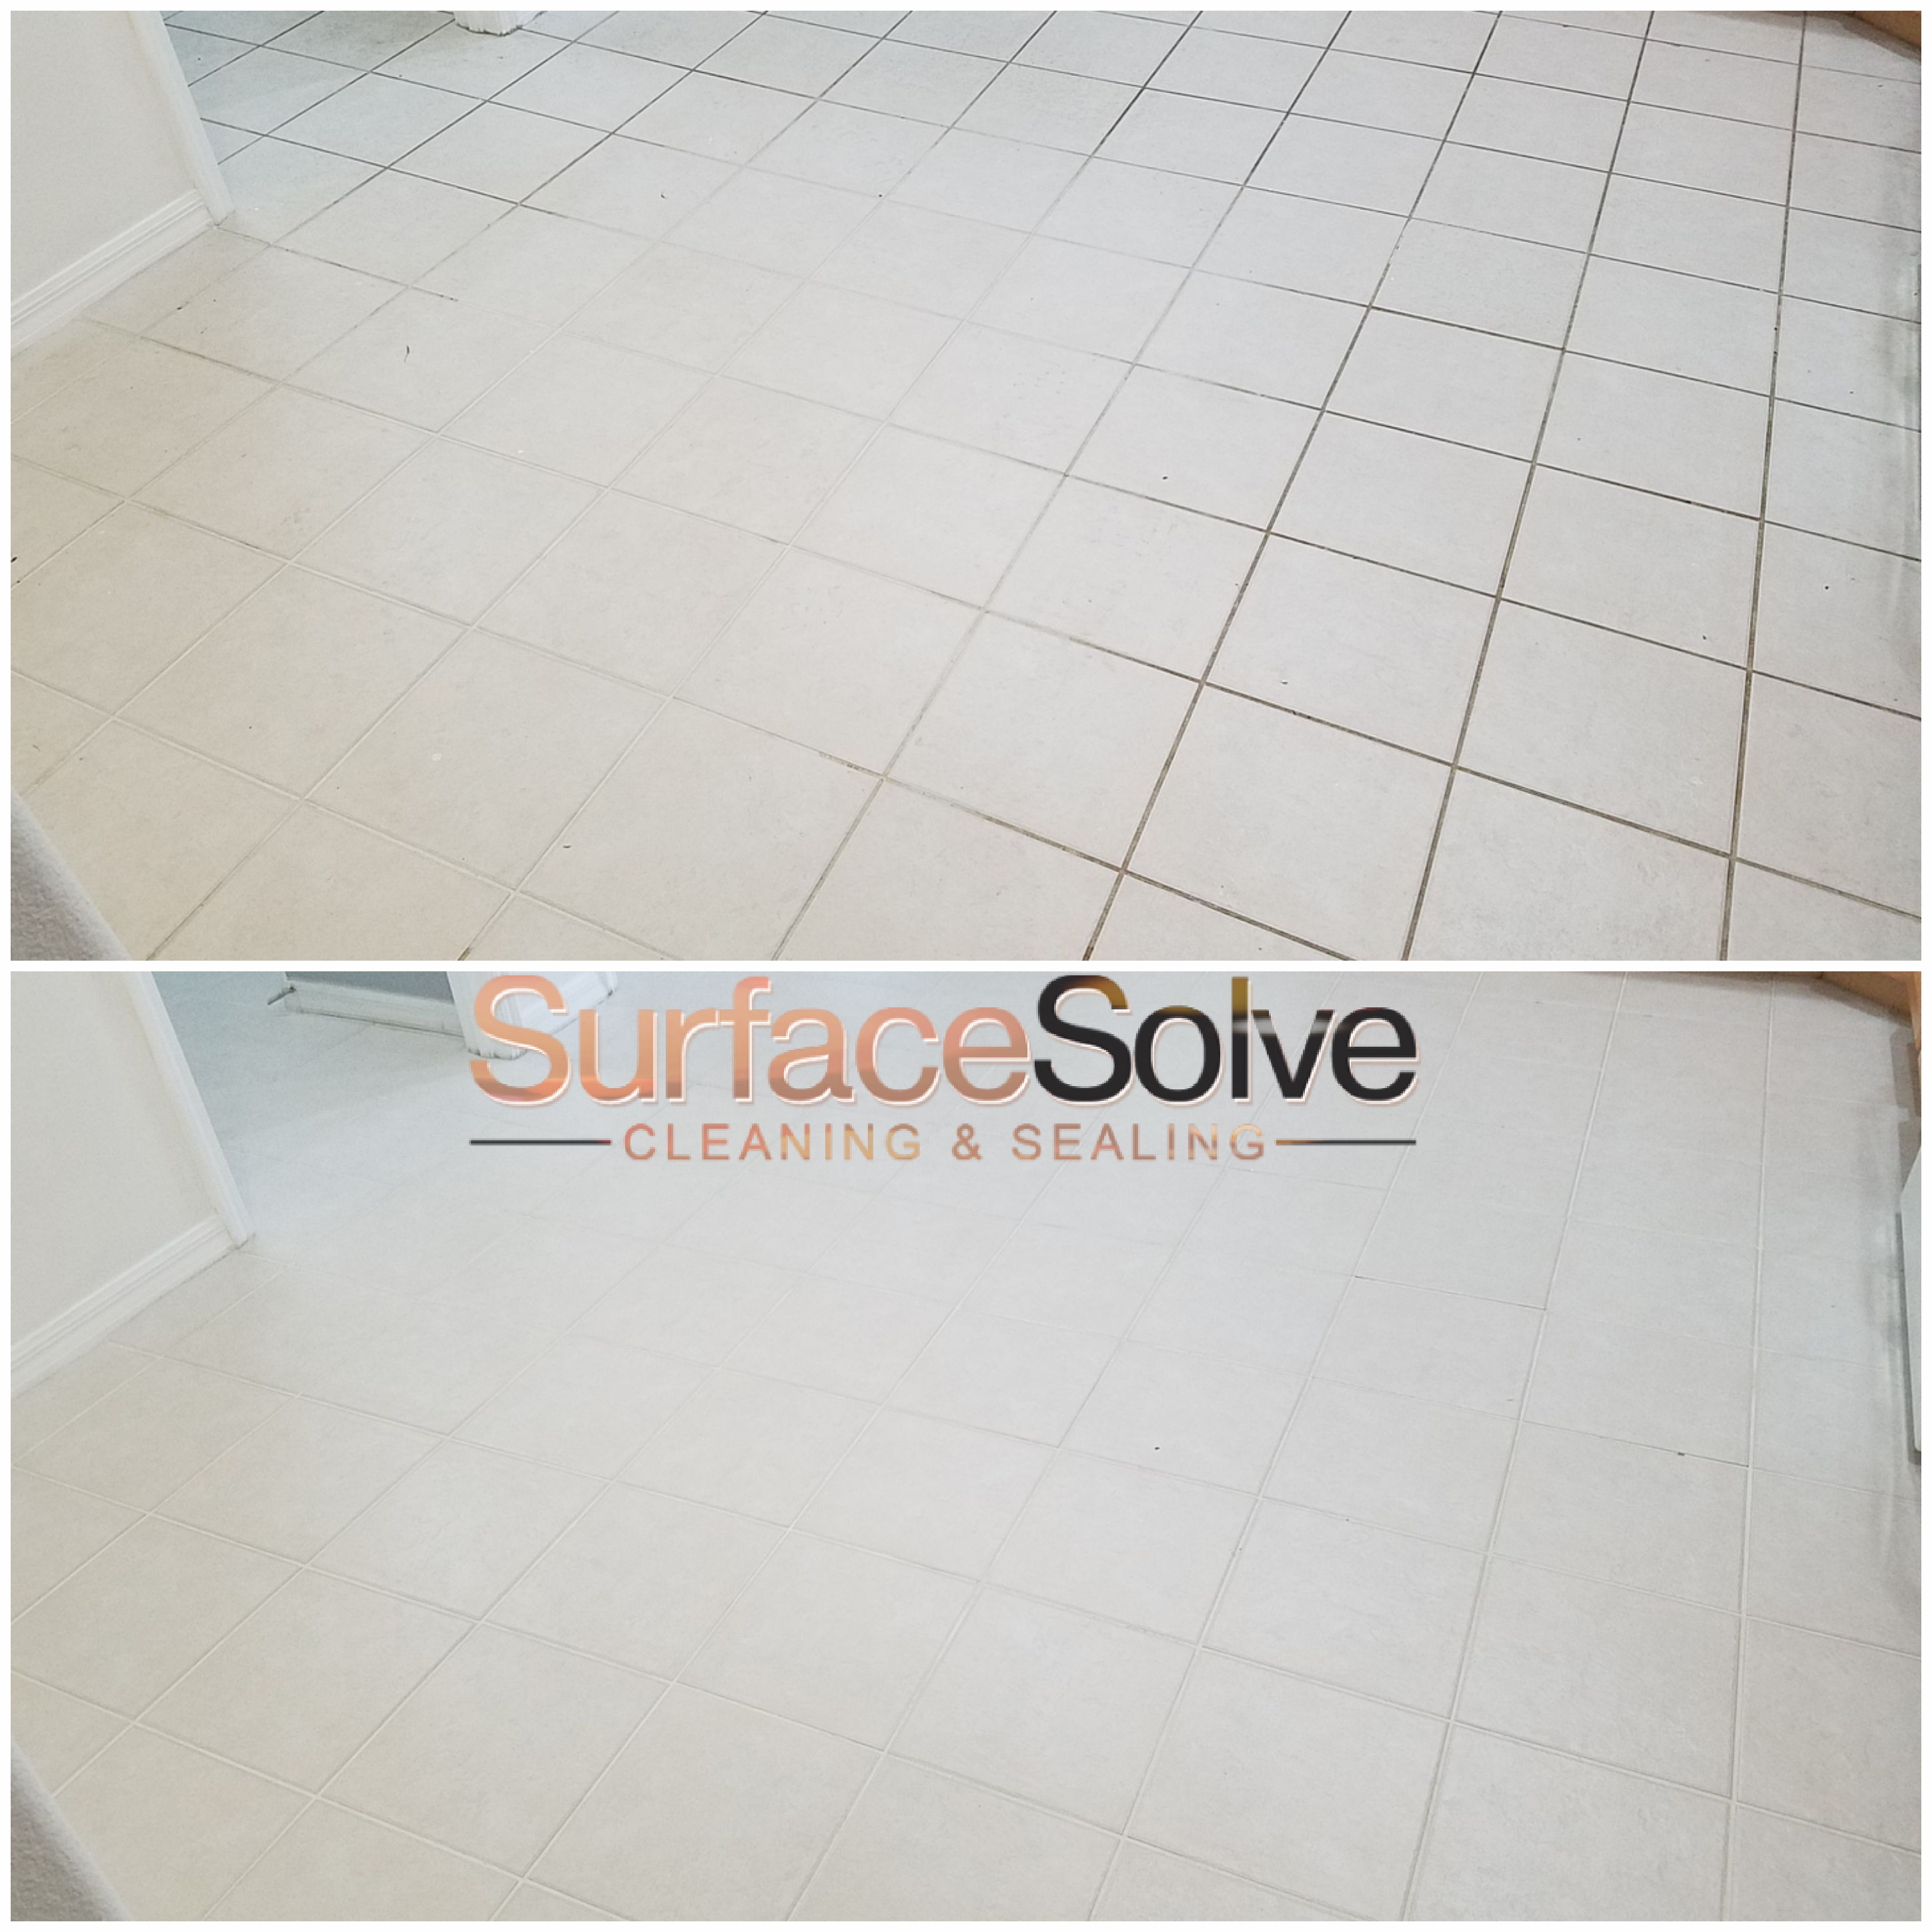 Recent Tile and Grout Cleaning Projects in 2018 | Tampa Tile Cleaning